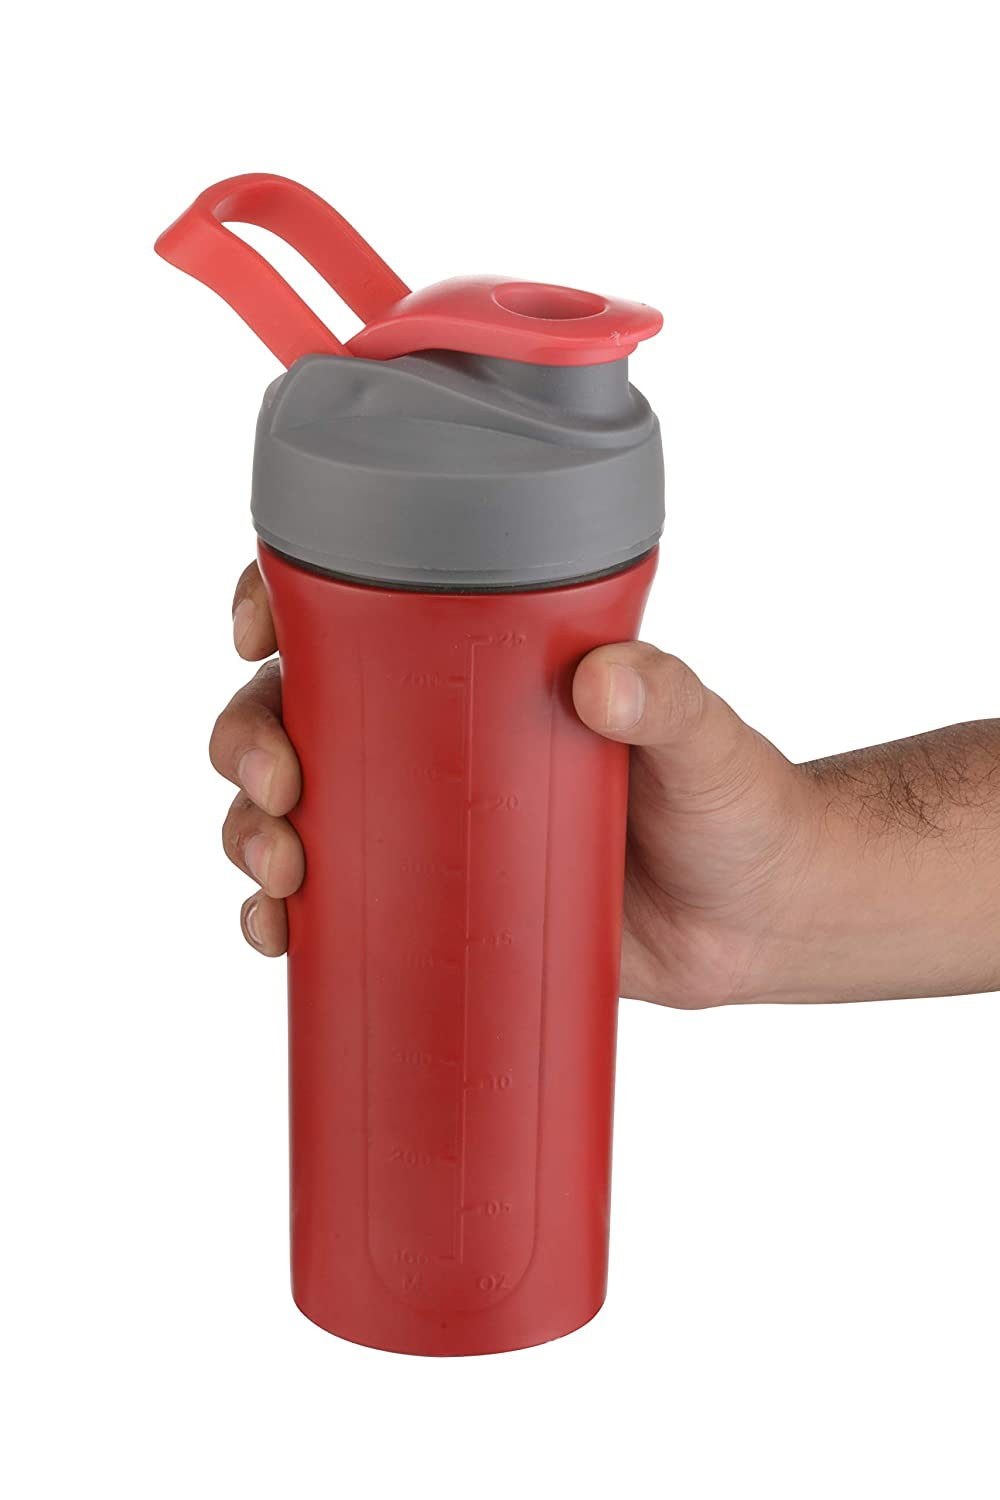 iShake Stainless Steel Metal BPA Free, Leak Proof, Shaker Bottle